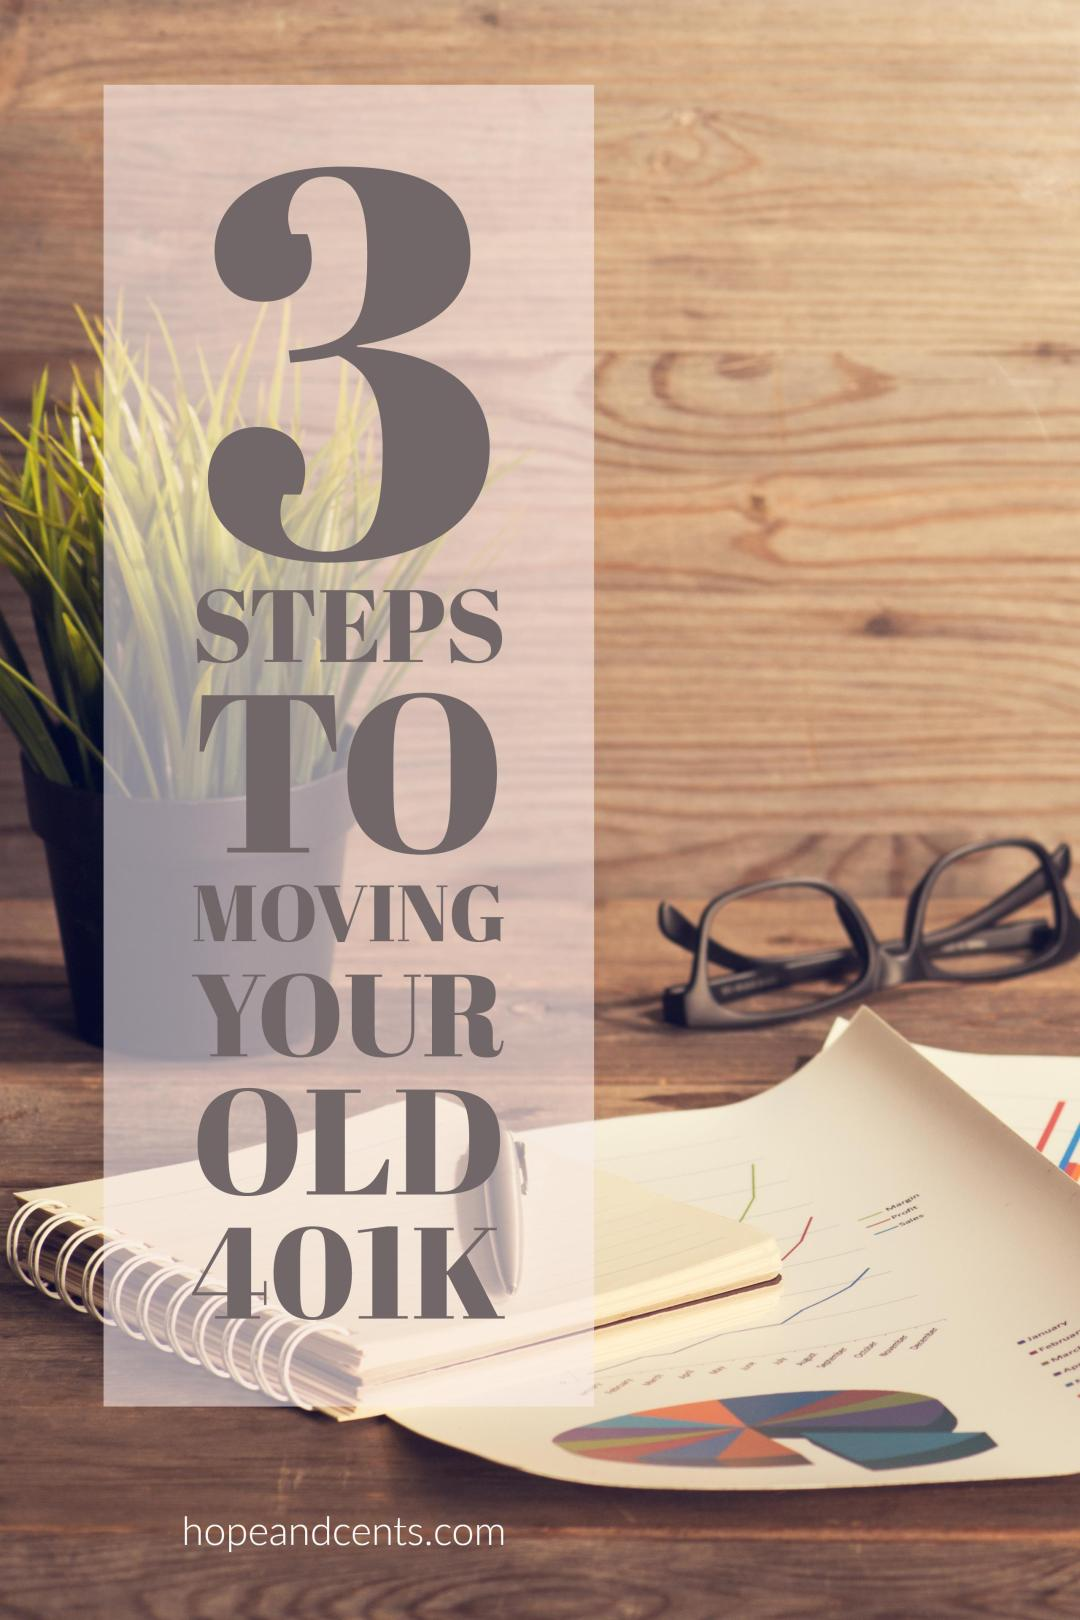 If you have an old 401k and you've been meaning to do something about it but haven't gotten around to it, it's time to stop procrastinating, and it's time to take action.